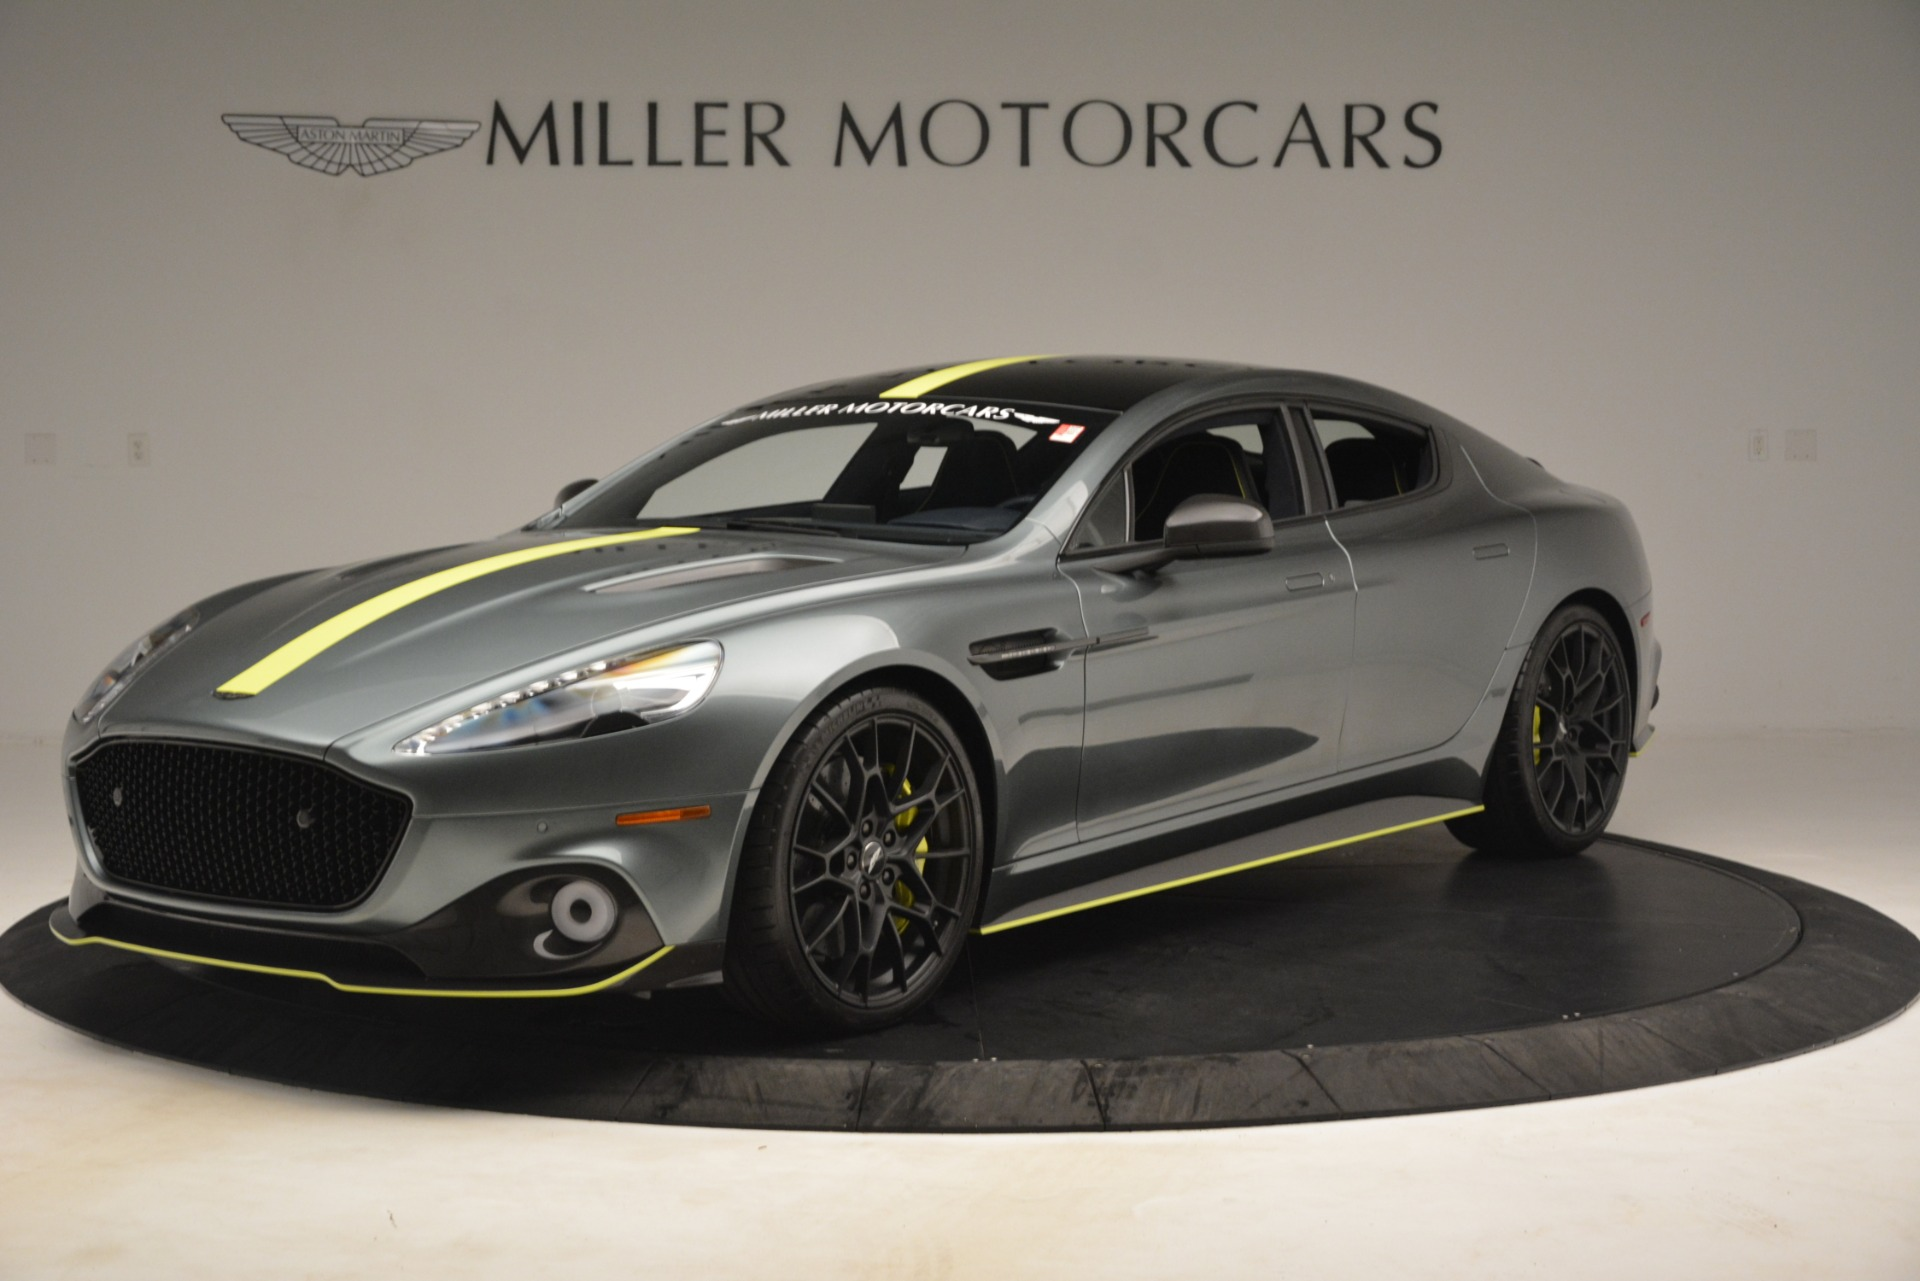 New 2019 Aston Martin Rapide AMR Sedan for sale $282,980 at Rolls-Royce Motor Cars Greenwich in Greenwich CT 06830 1